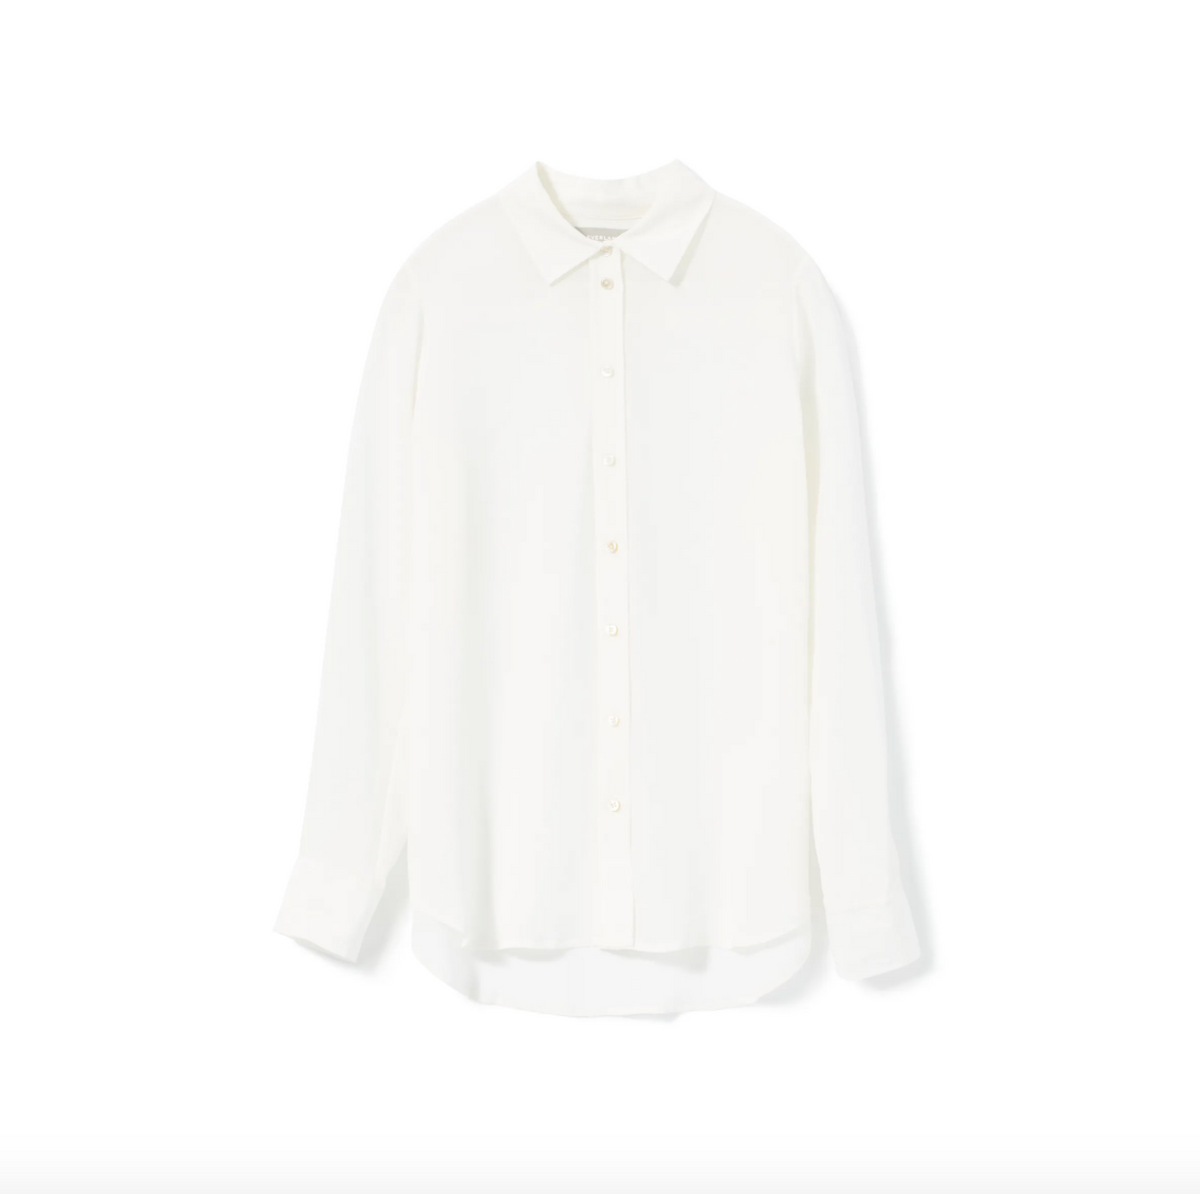 The Clean Relaxed Shirt